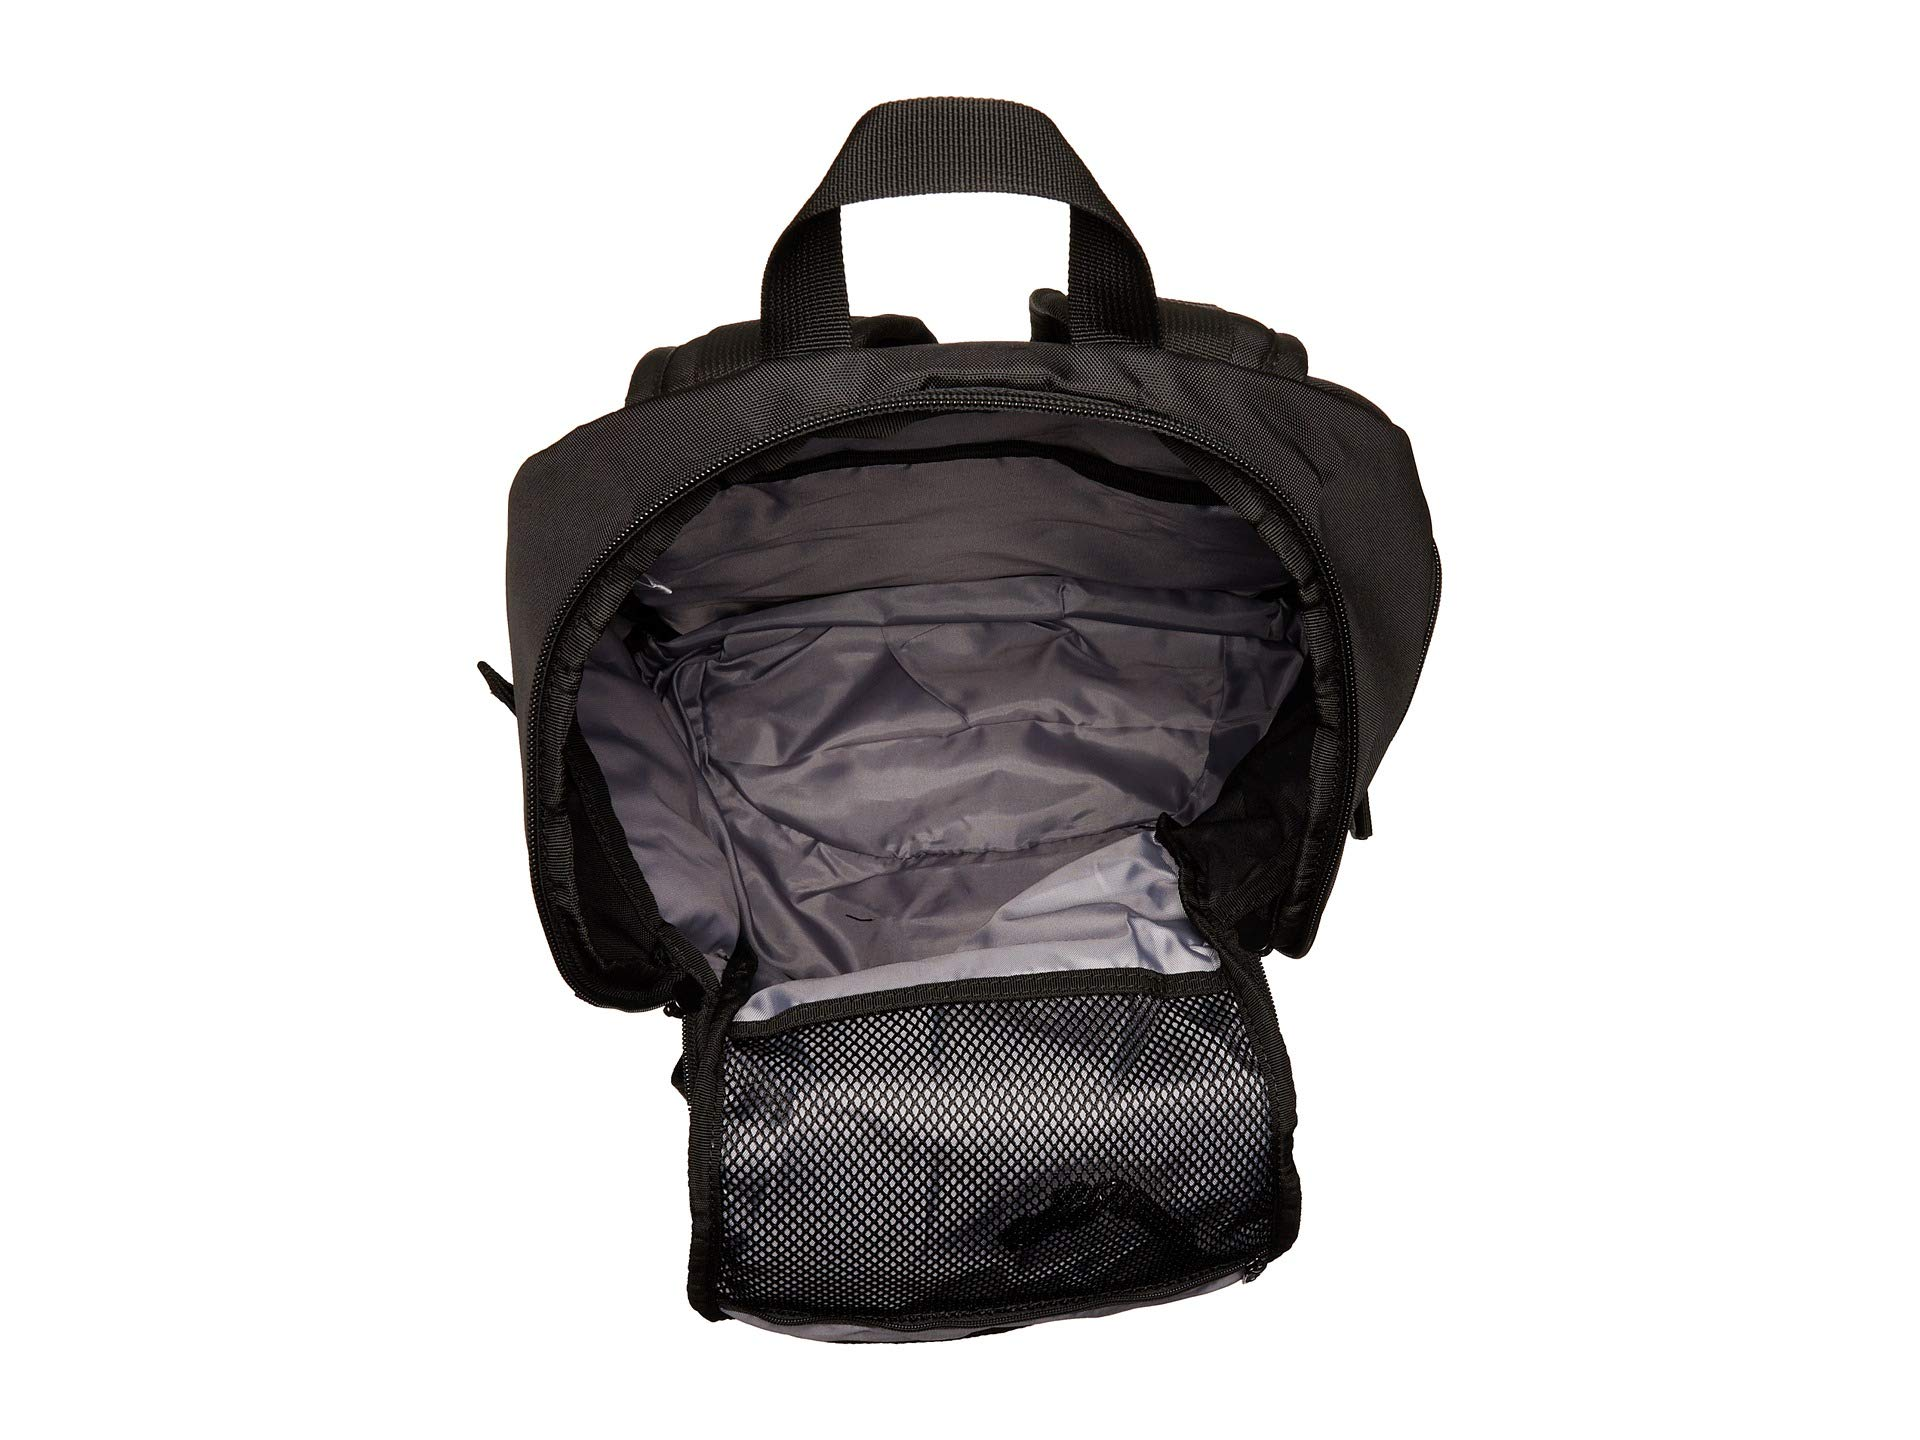 365 Basketball Backpack Creator Black Adidas AngqvZxW5